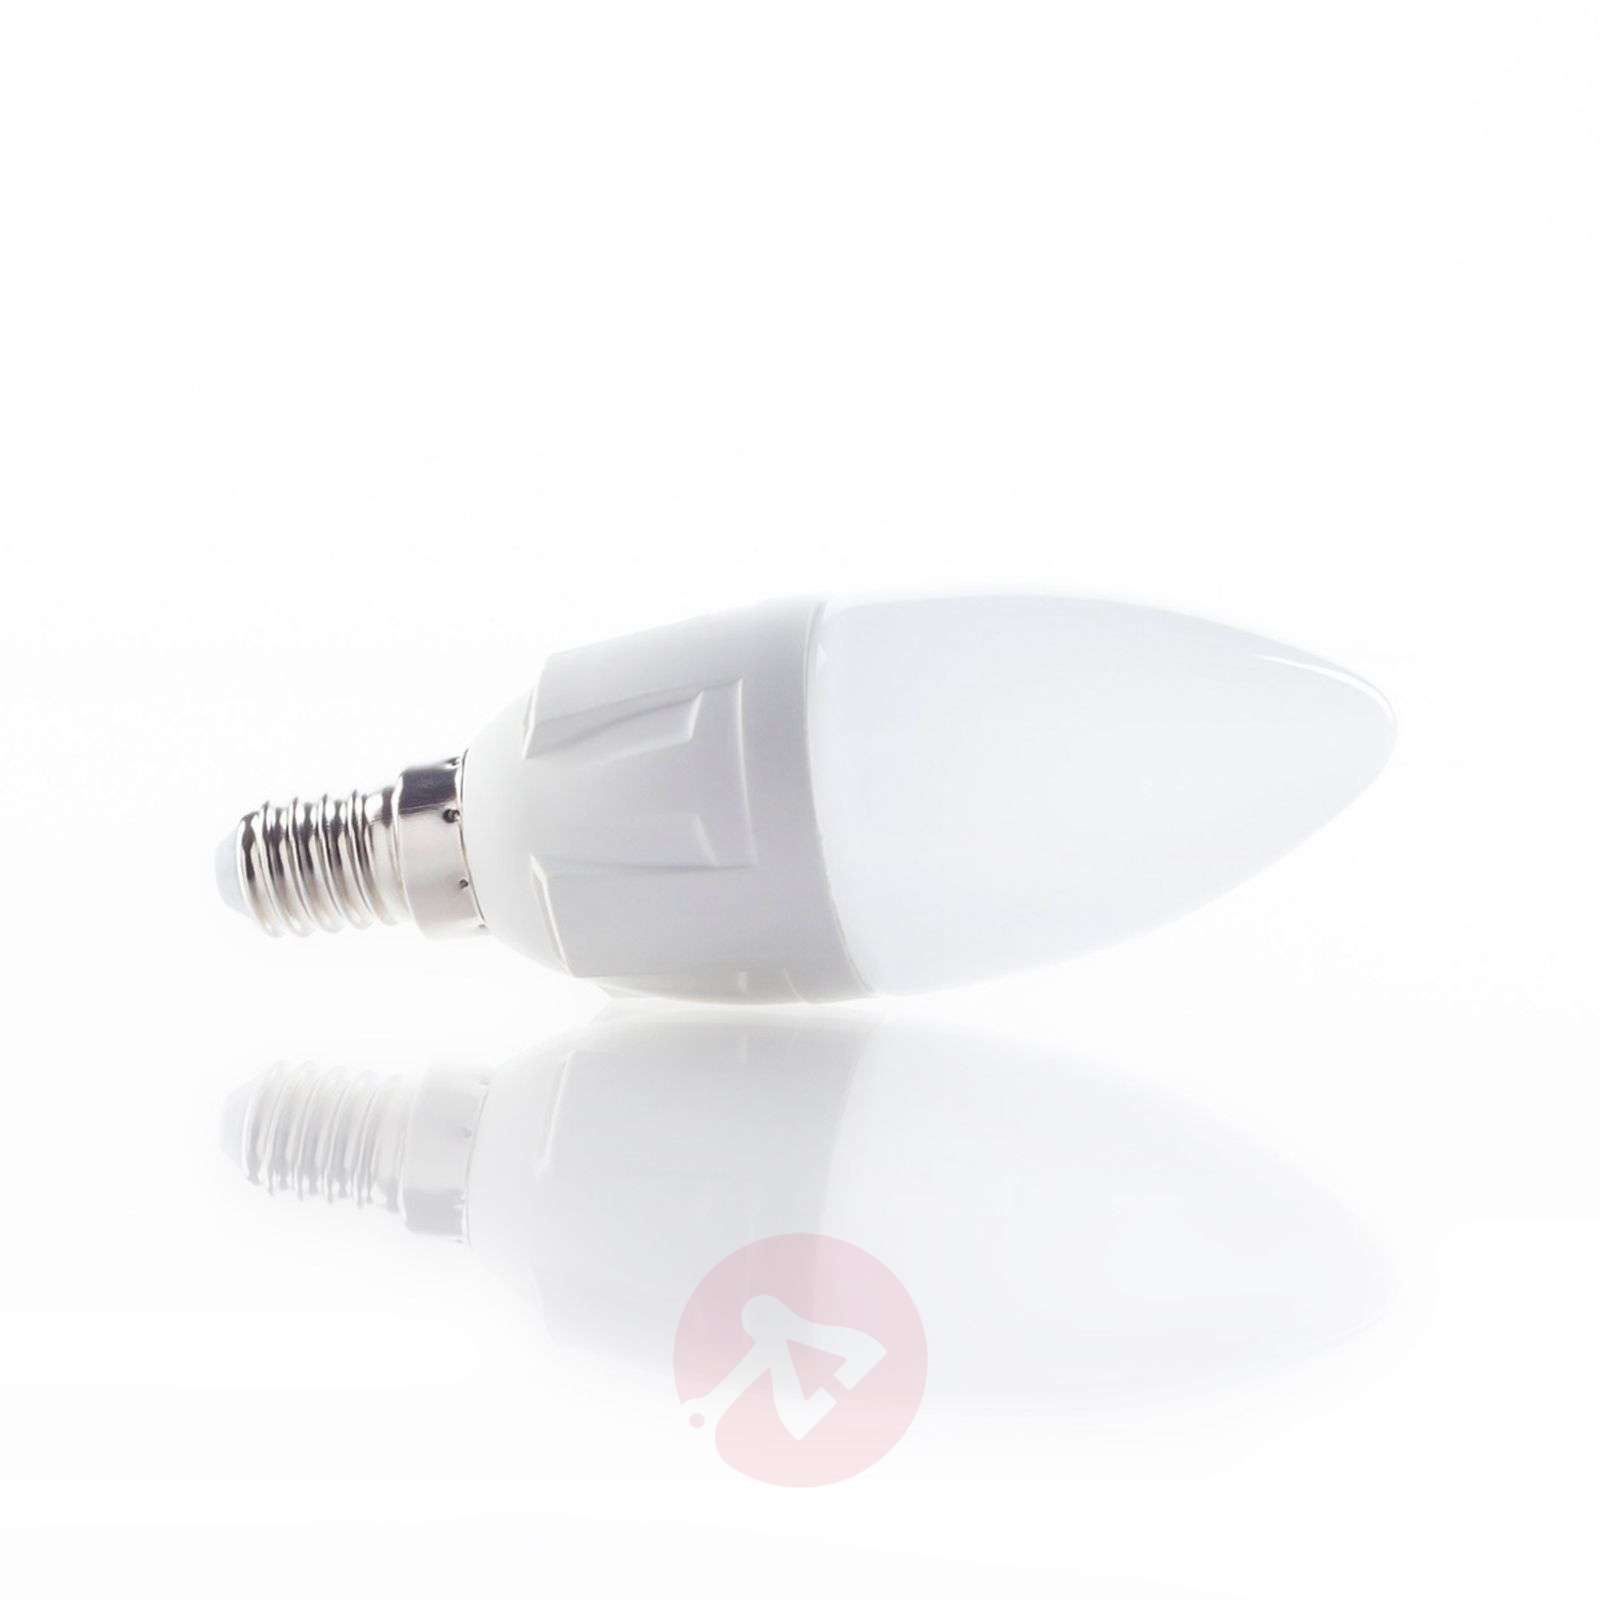 E14 6W 830 LED-lamp kaarsvormig warm-wit-9993004-02